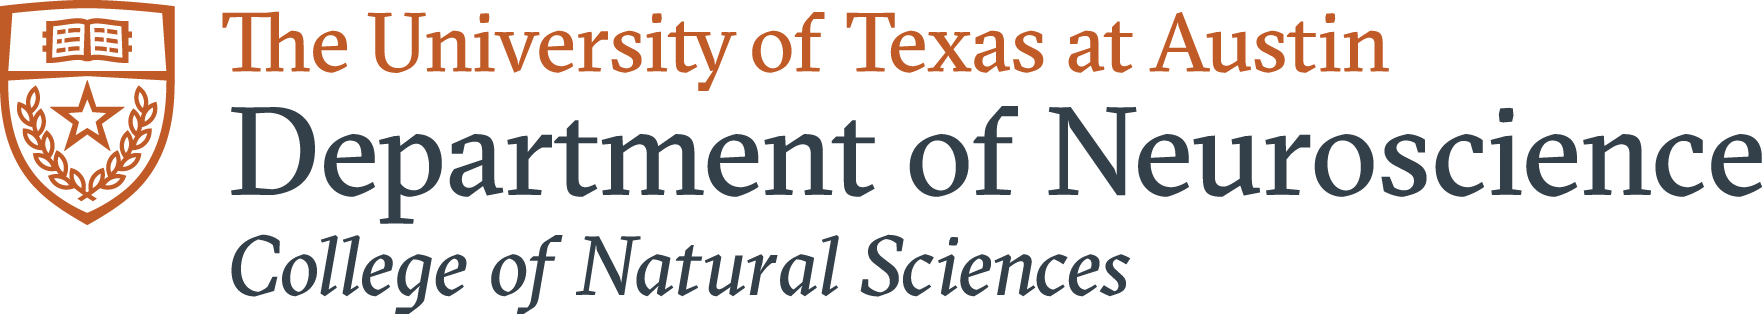 Neuroscience-banner-logo